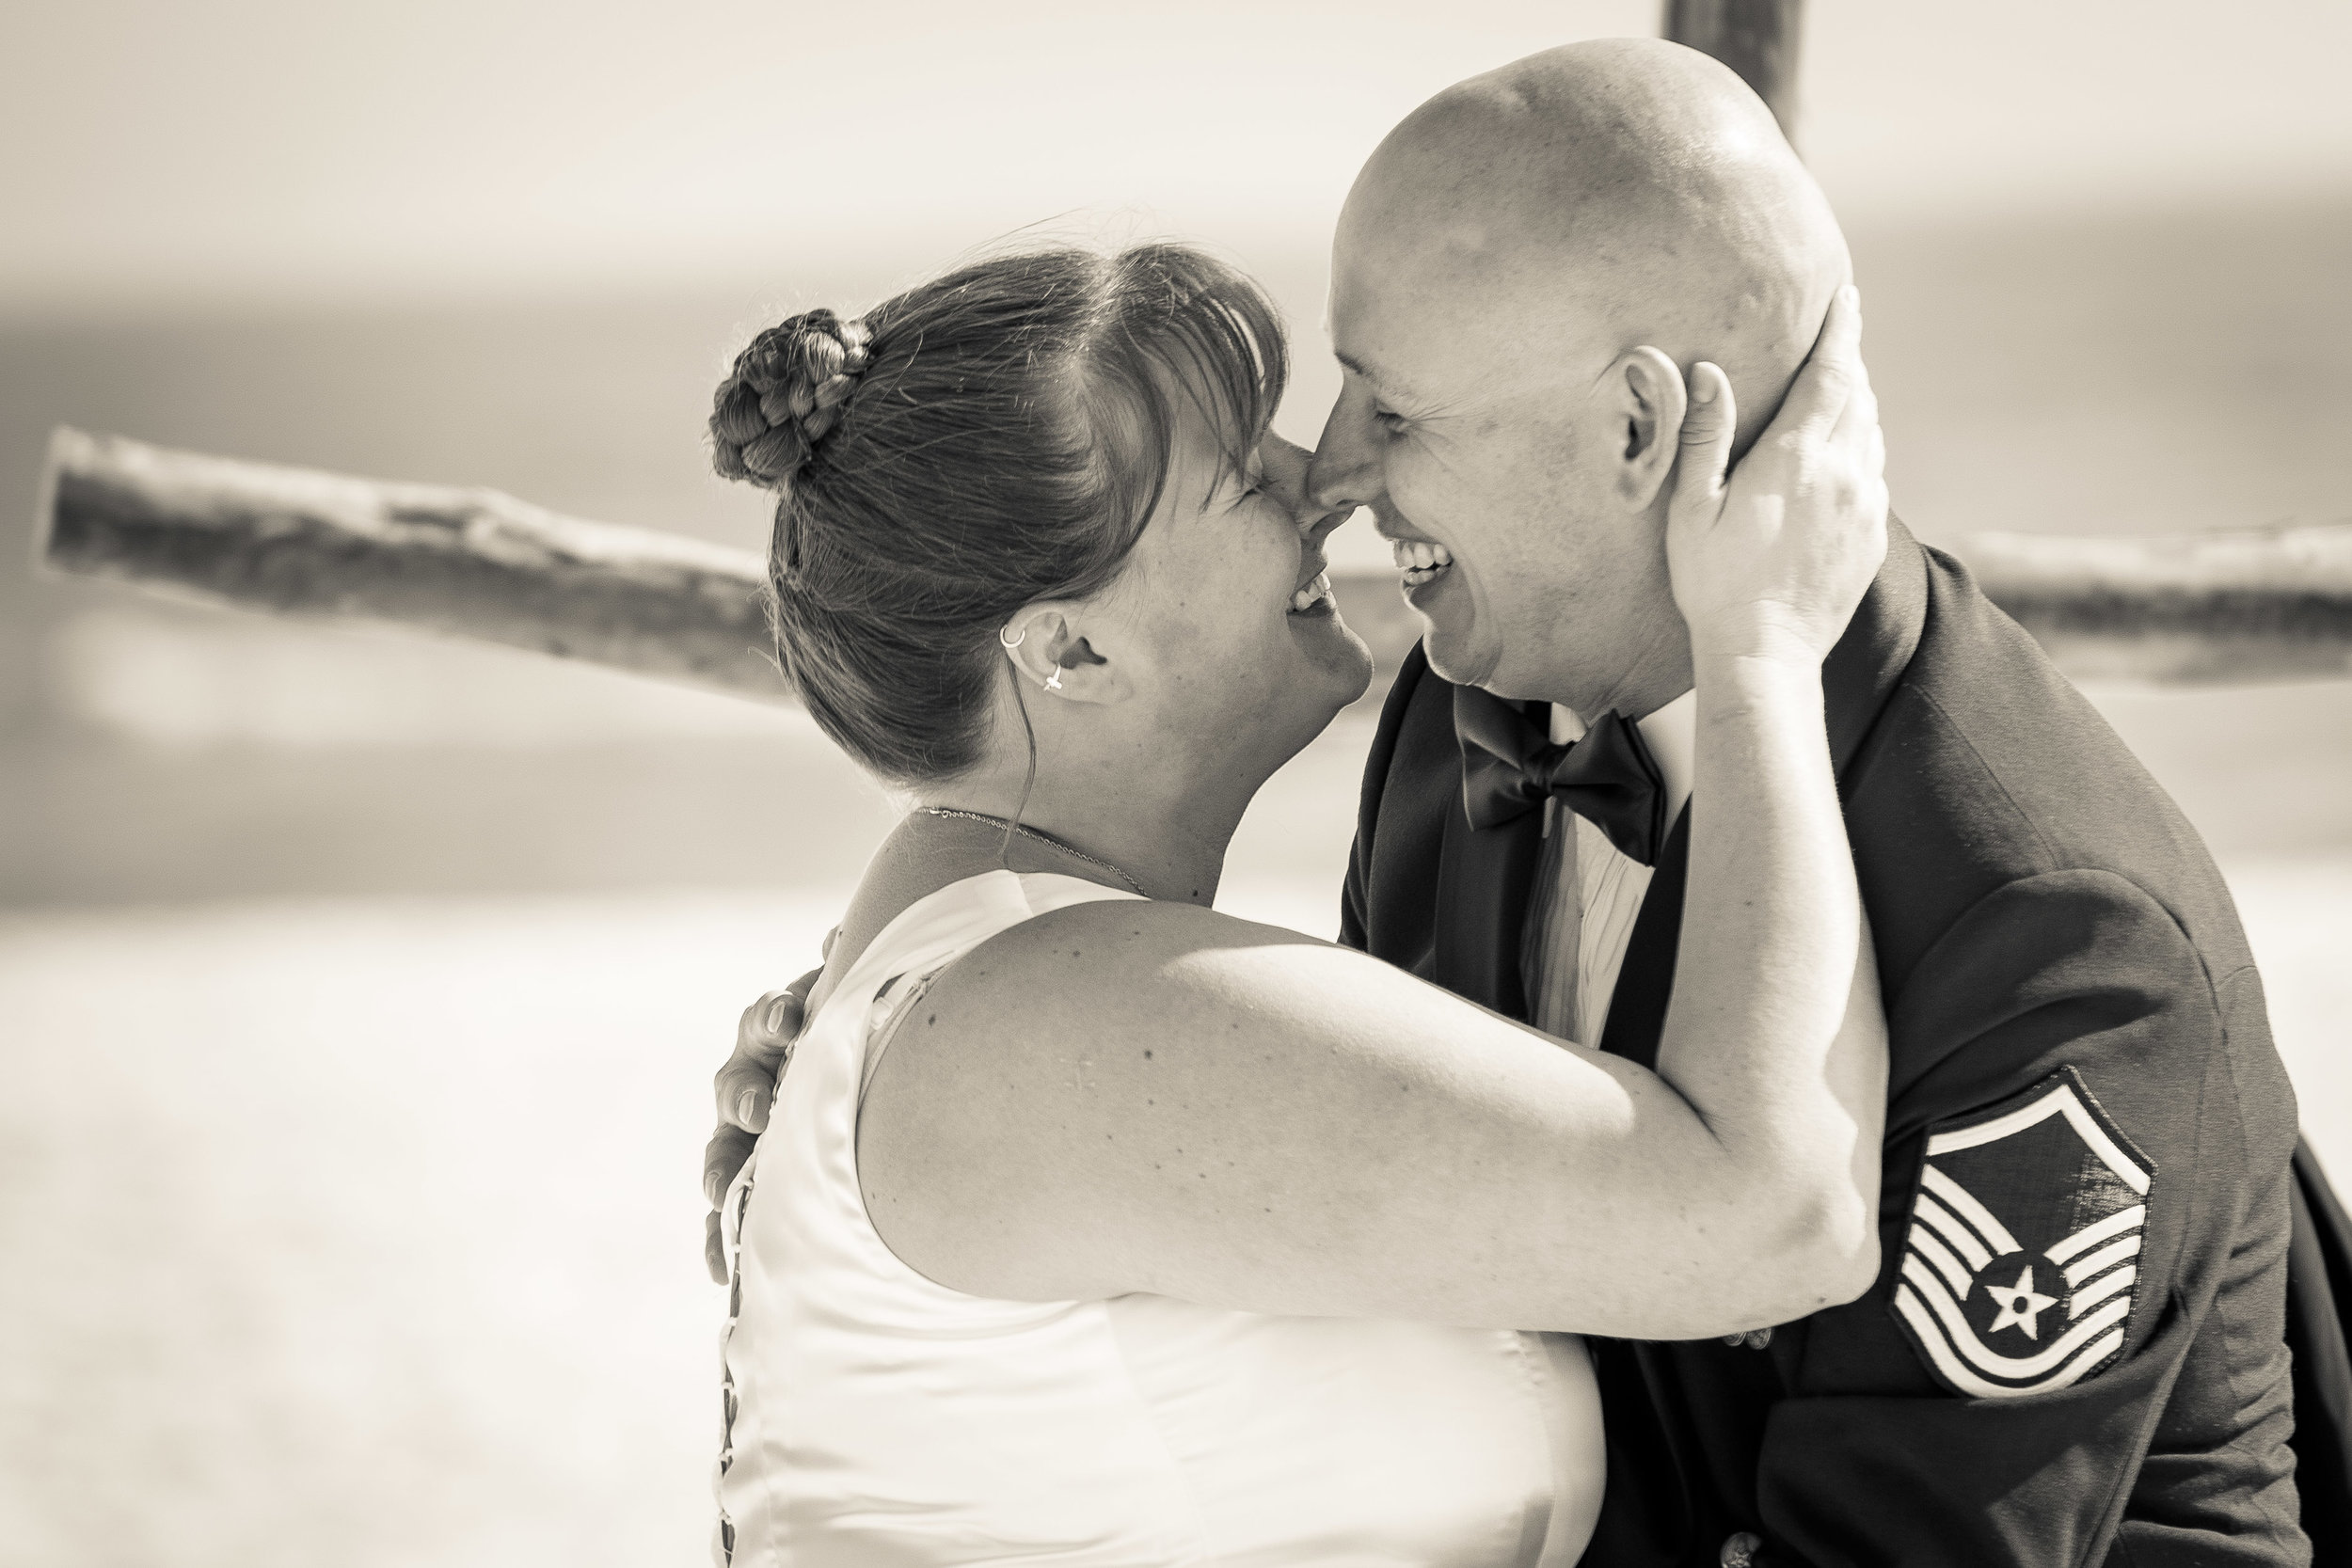 black and white image ofkiss by bride and groom at pensacola beach wedding ceremony by photographer adam cotton